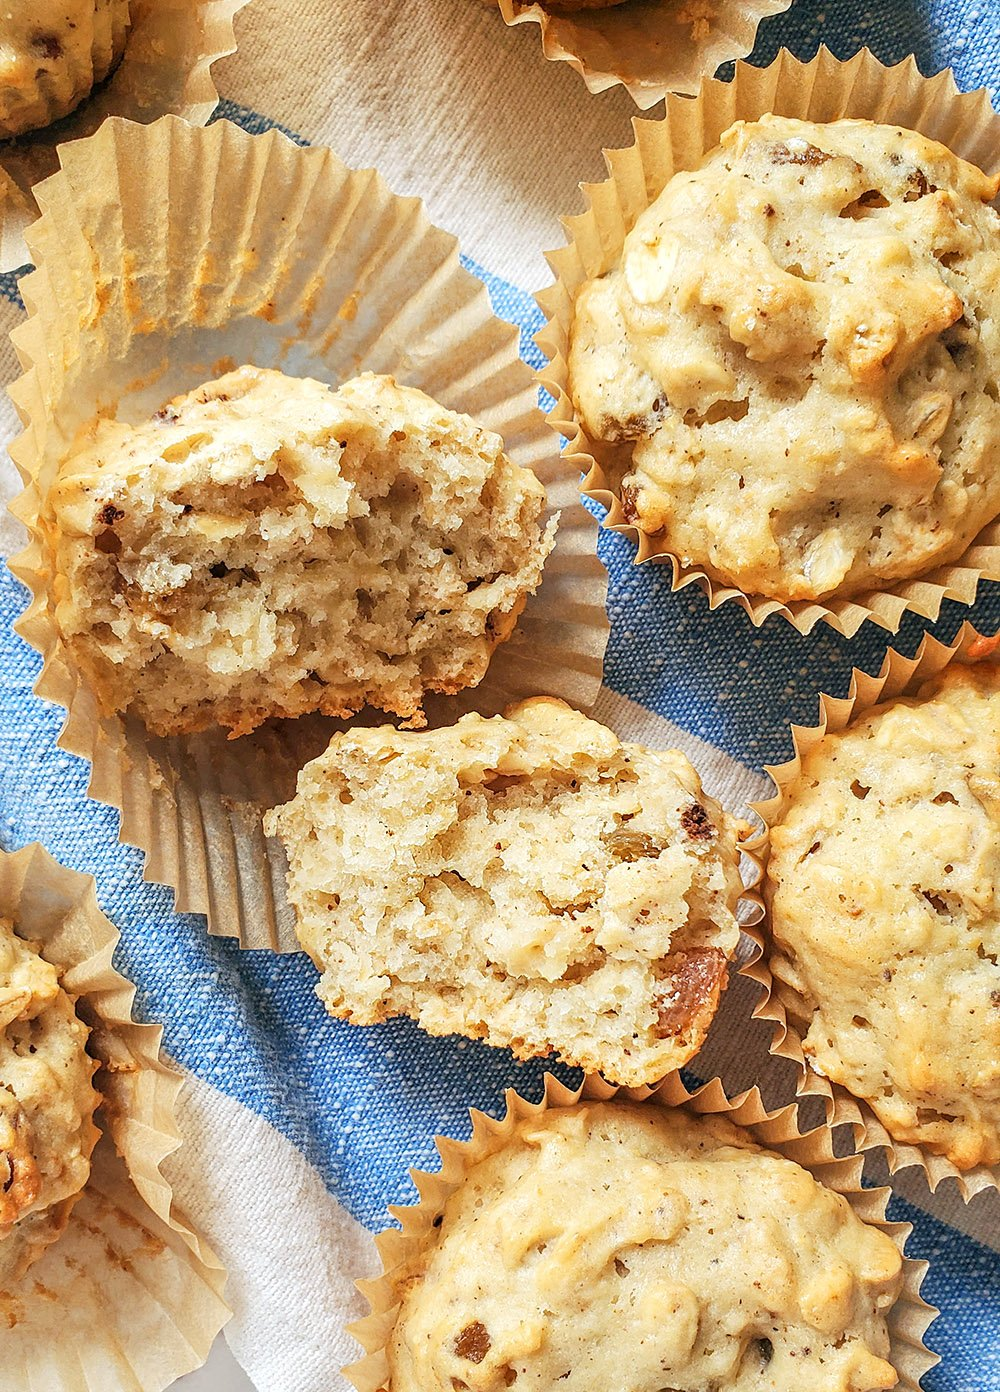 applesauce muffins with raisins and walnuts